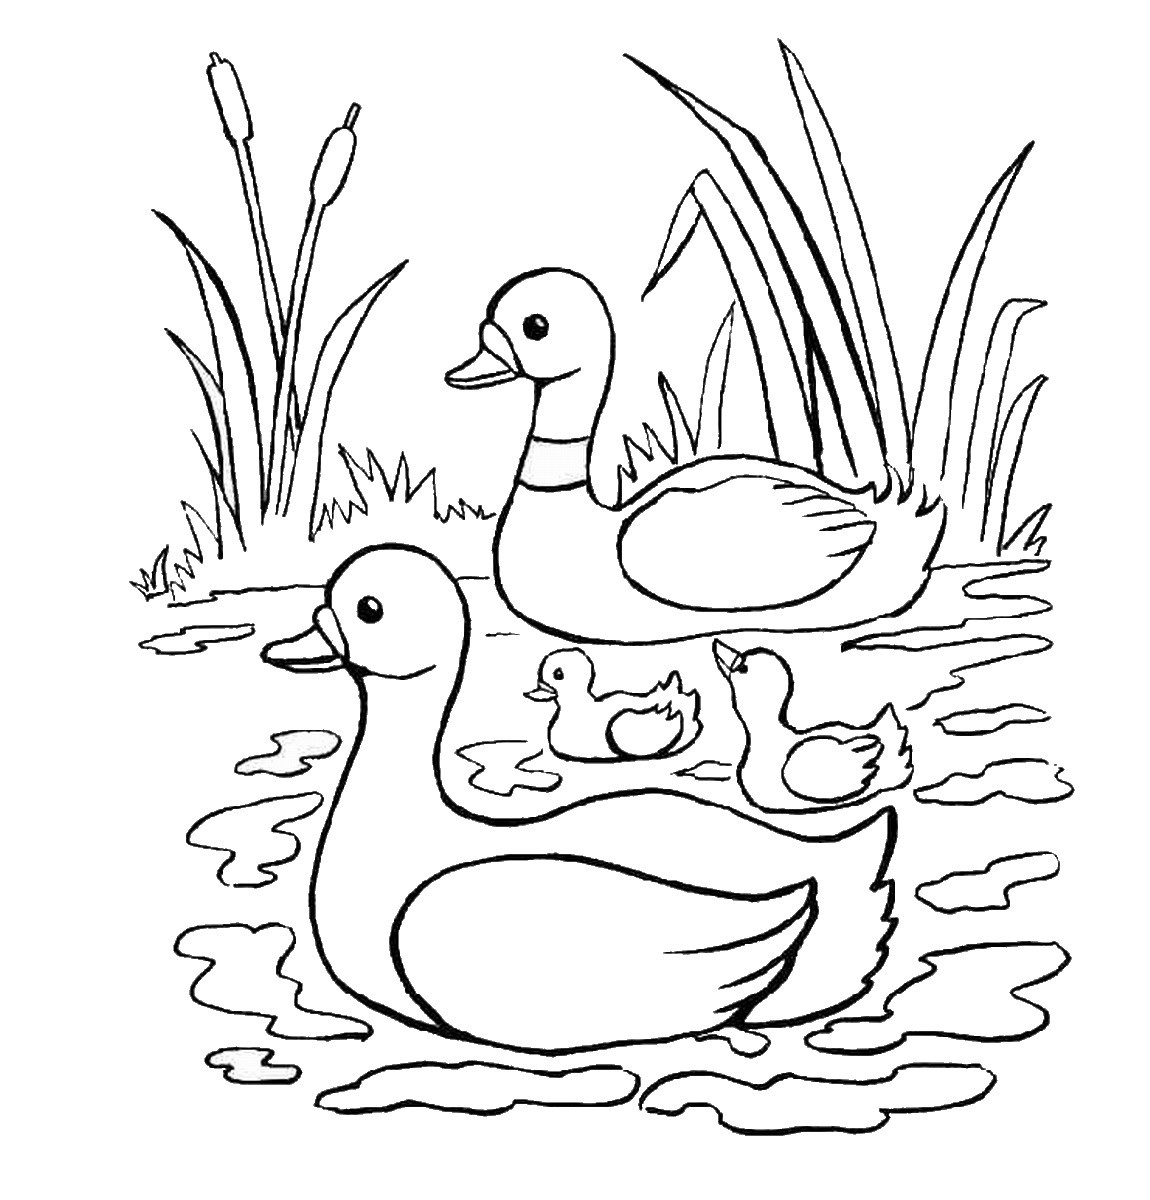 Ducks Coloring Pages  Duck Coloring Pages